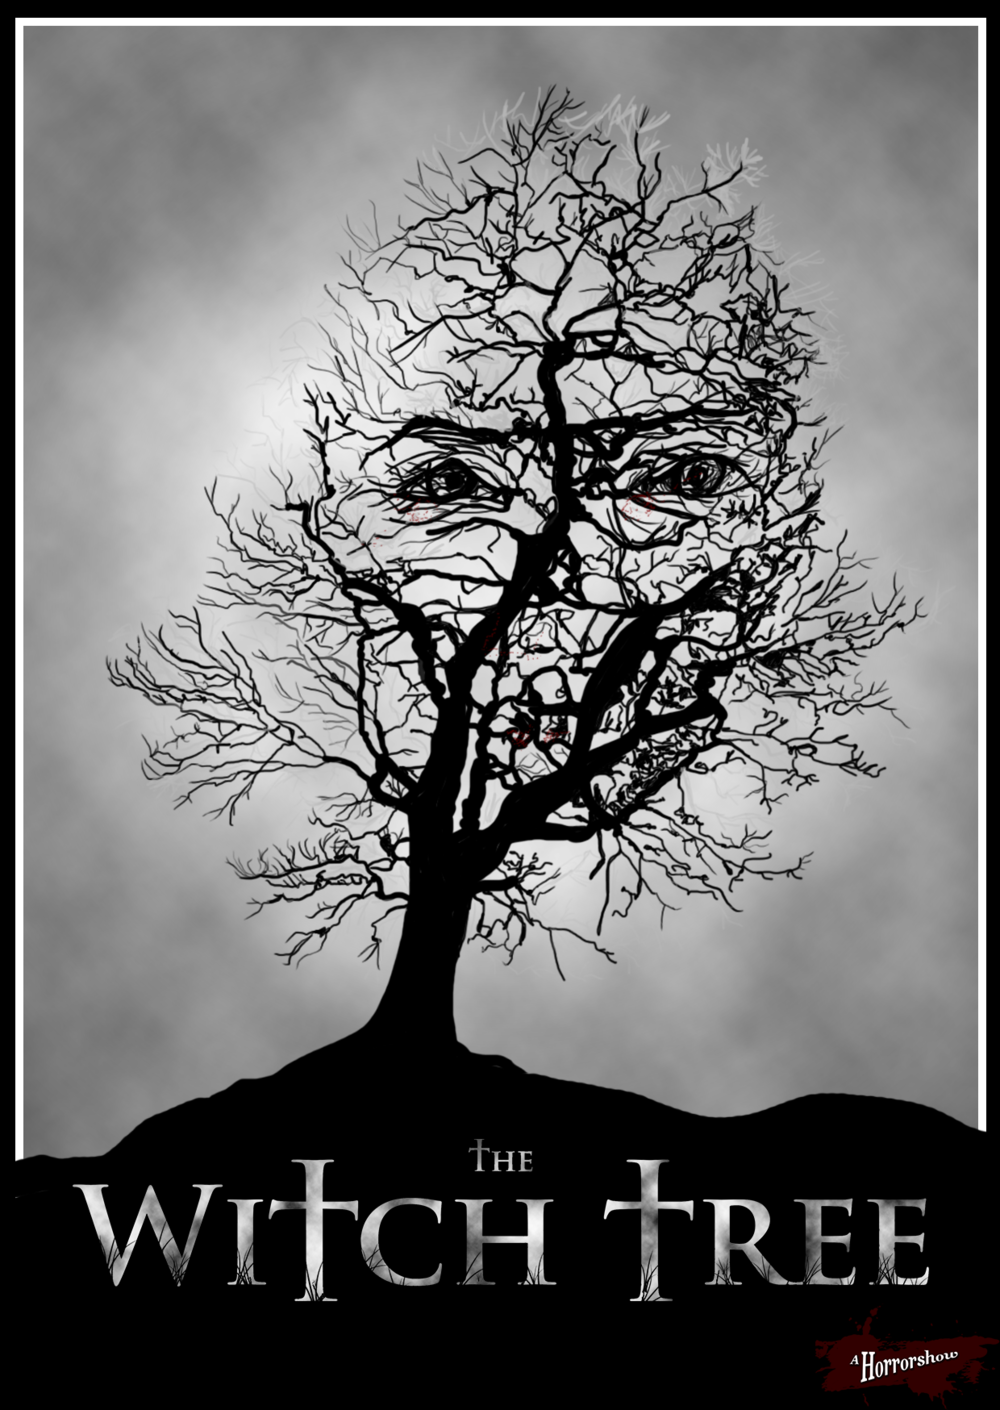 We had alot of fun making The Witch Tree, it is by far our most ambitious film to date and we cant wait to unleash this one. -